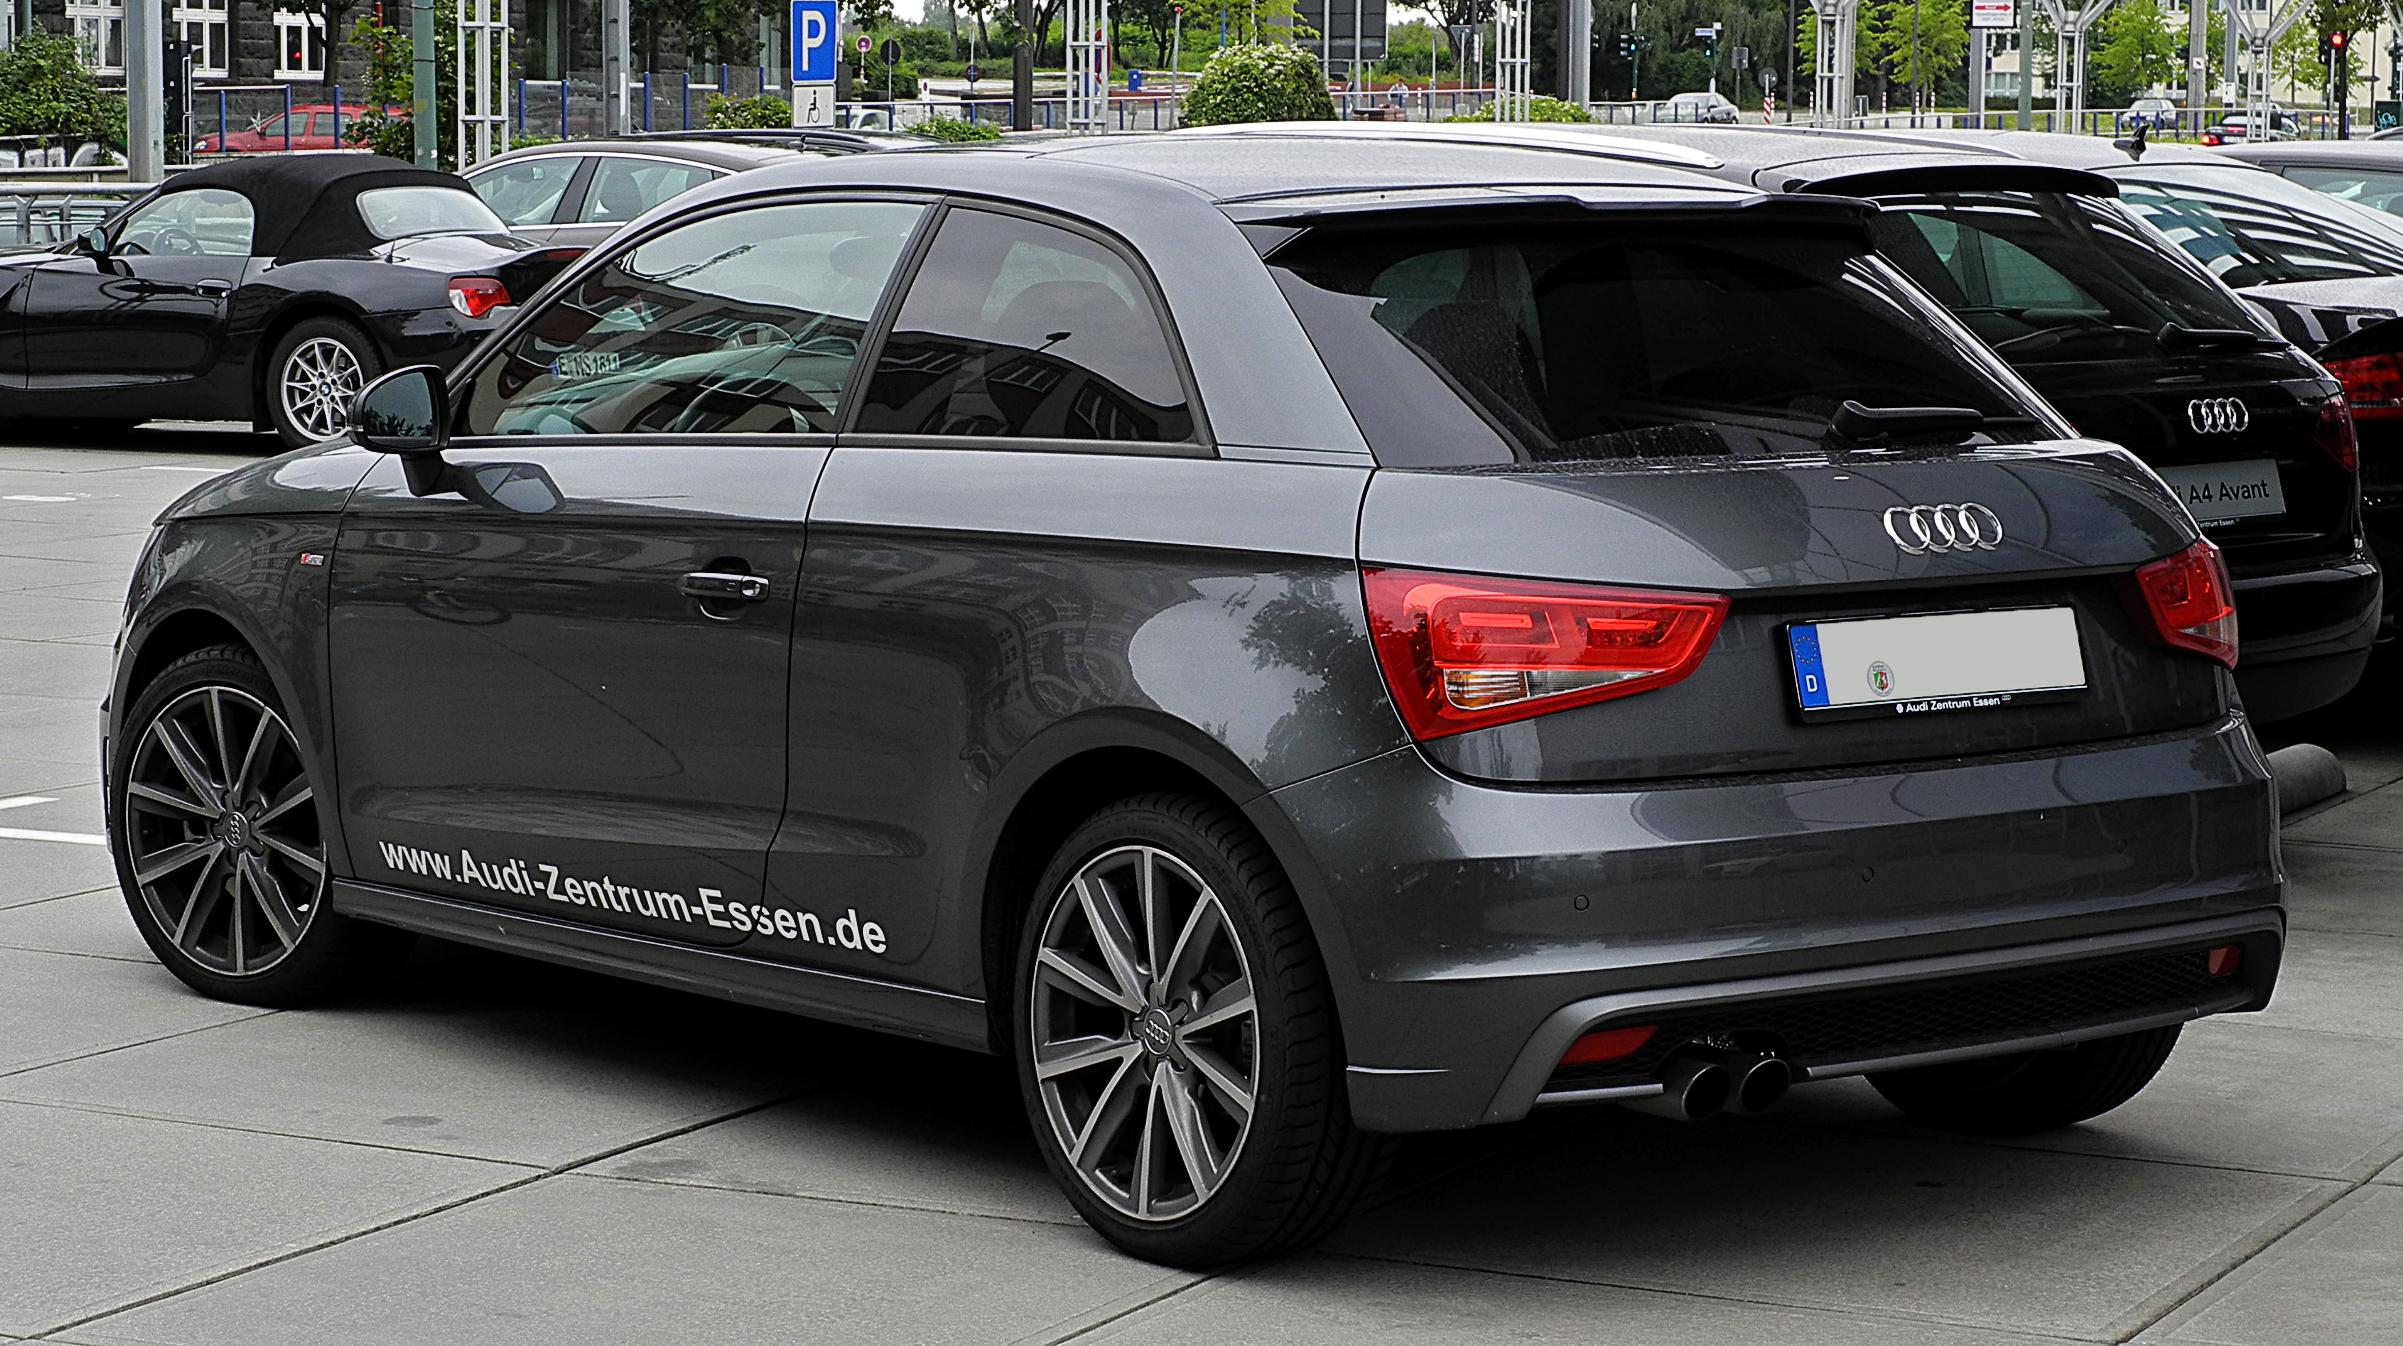 Audi A1 1.4 TFSI S-line technical details, history, photos on Better